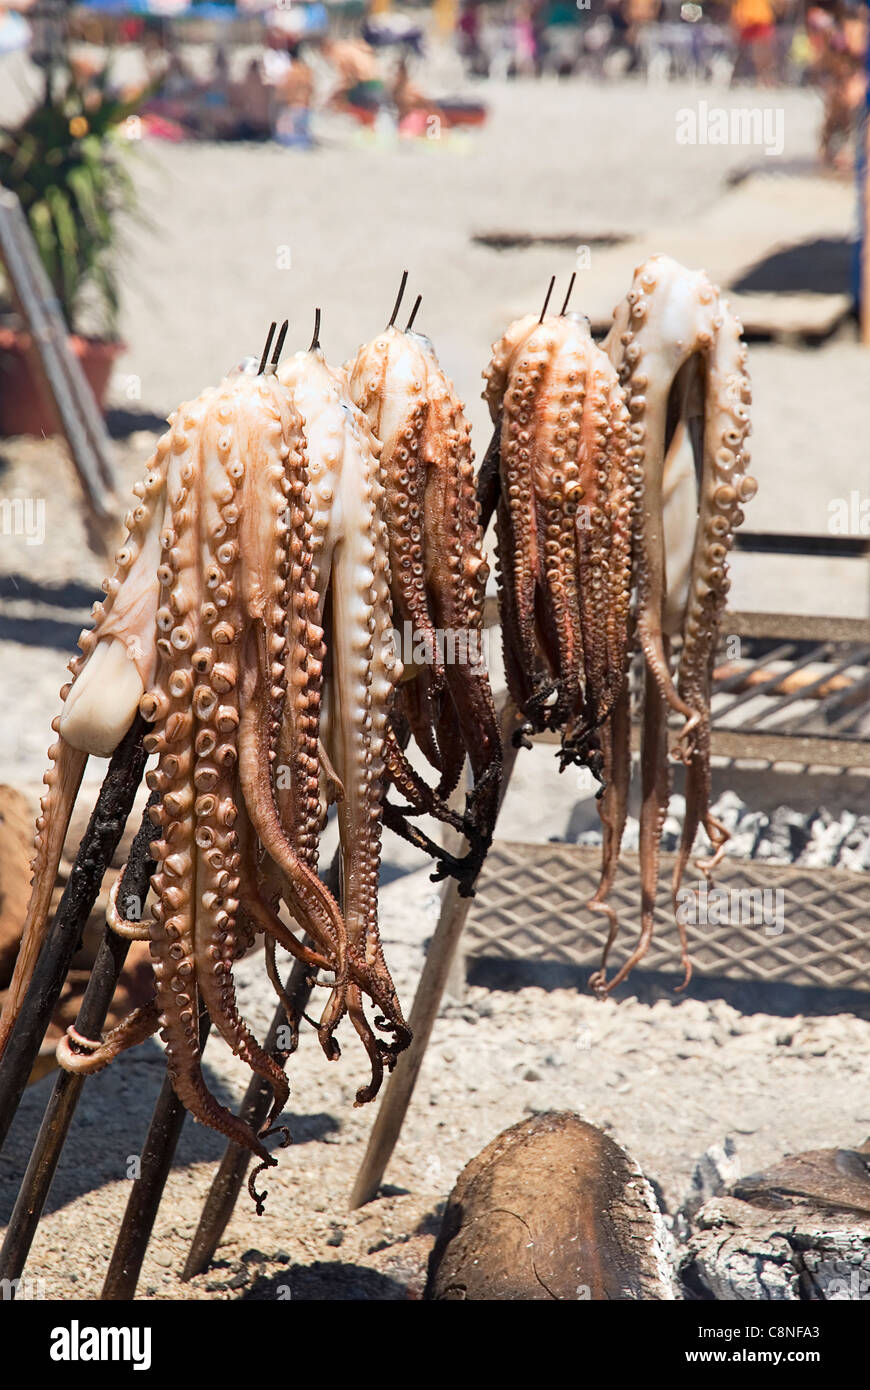 Grilling Octopus Stock Photos & Grilling Octopus Stock Images - Alamy